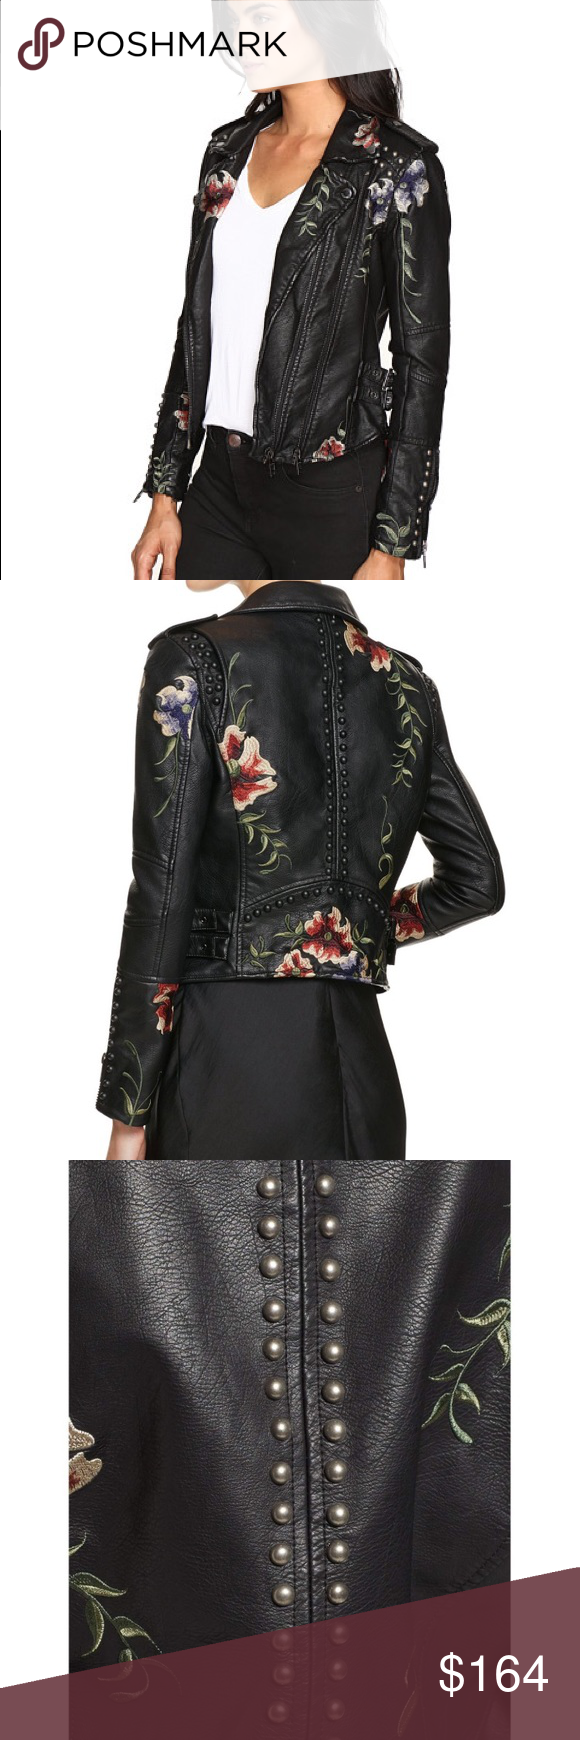 NWT Blank NYC Floral embroidered Moto Jacket NWT FALL 2017! Gorgeously  embellished faux leather moto jacket by BLANKNYC. In a tailored fit with  dual ...